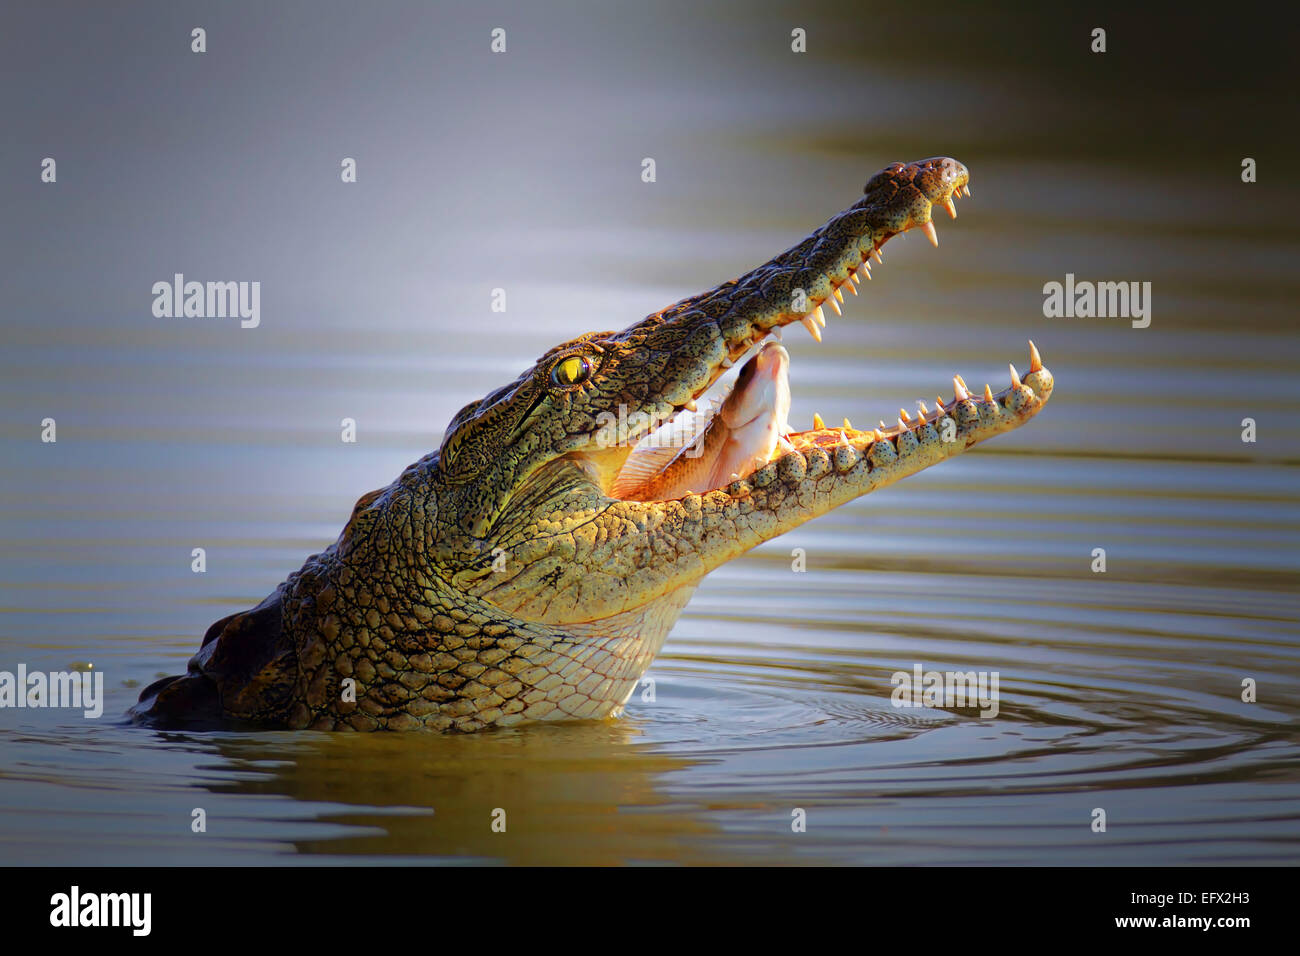 Crocodile du Nil avaler un poisson ; Crocodylus niloticus - Kruger National Park Photo Stock